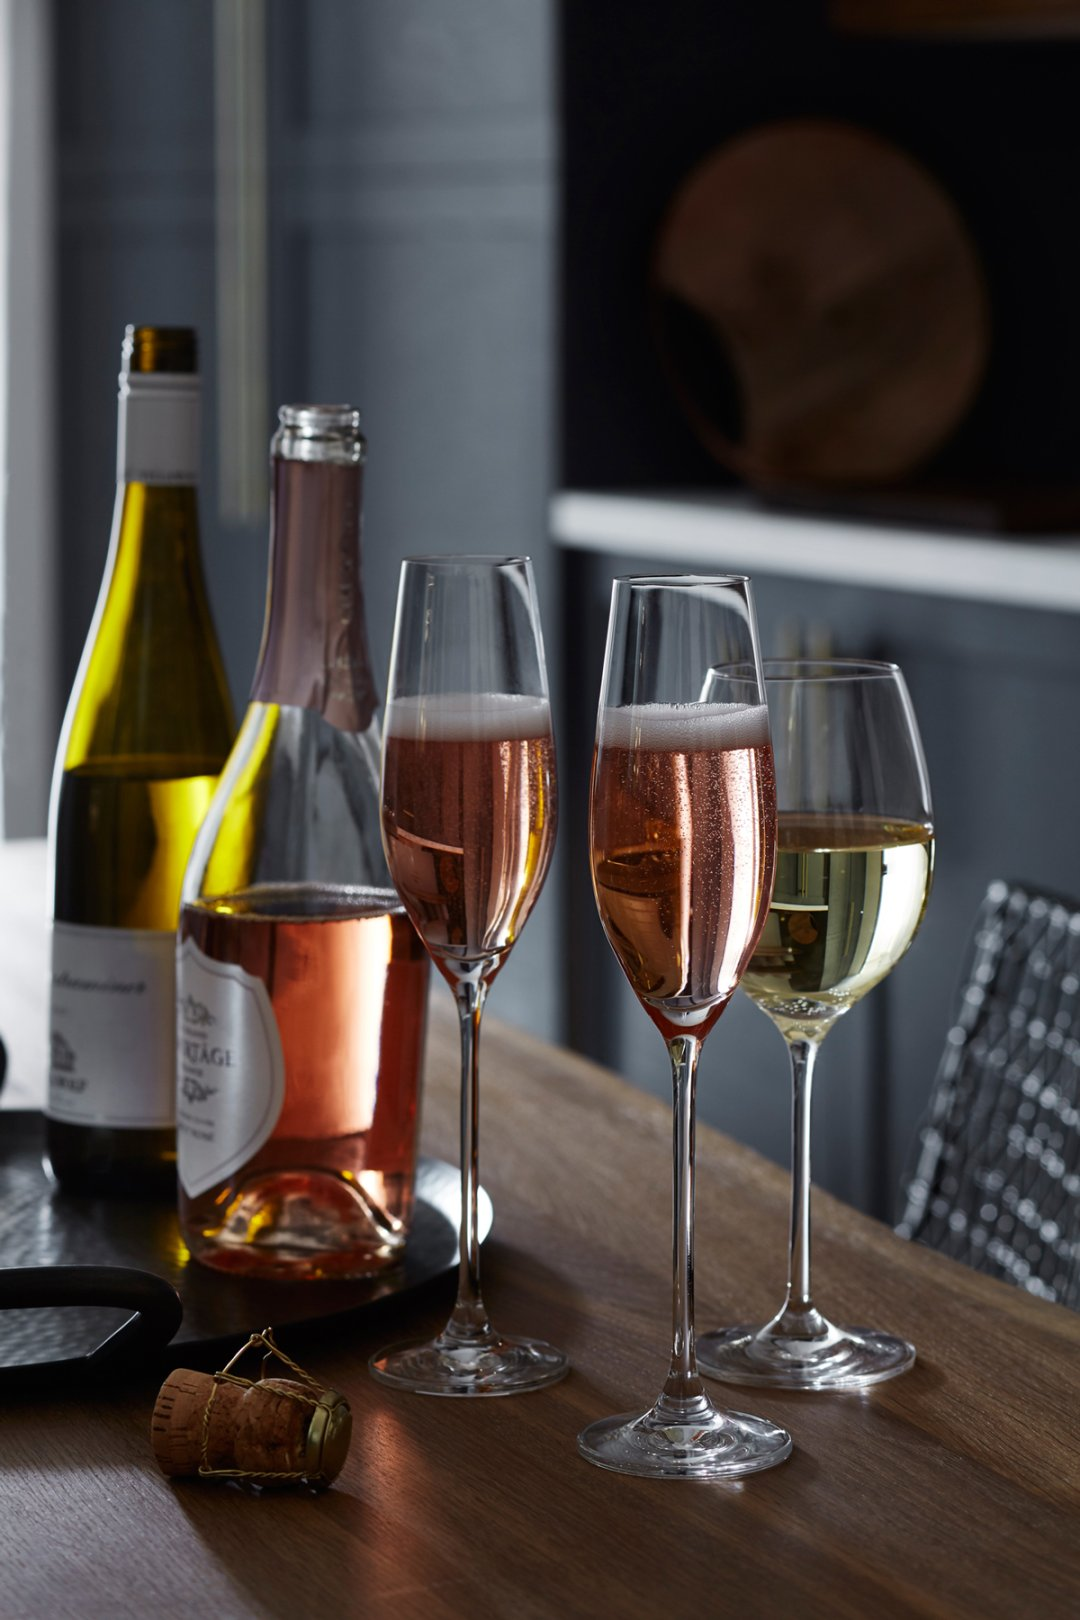 Champagne and wines to pair with harvest gathering menu